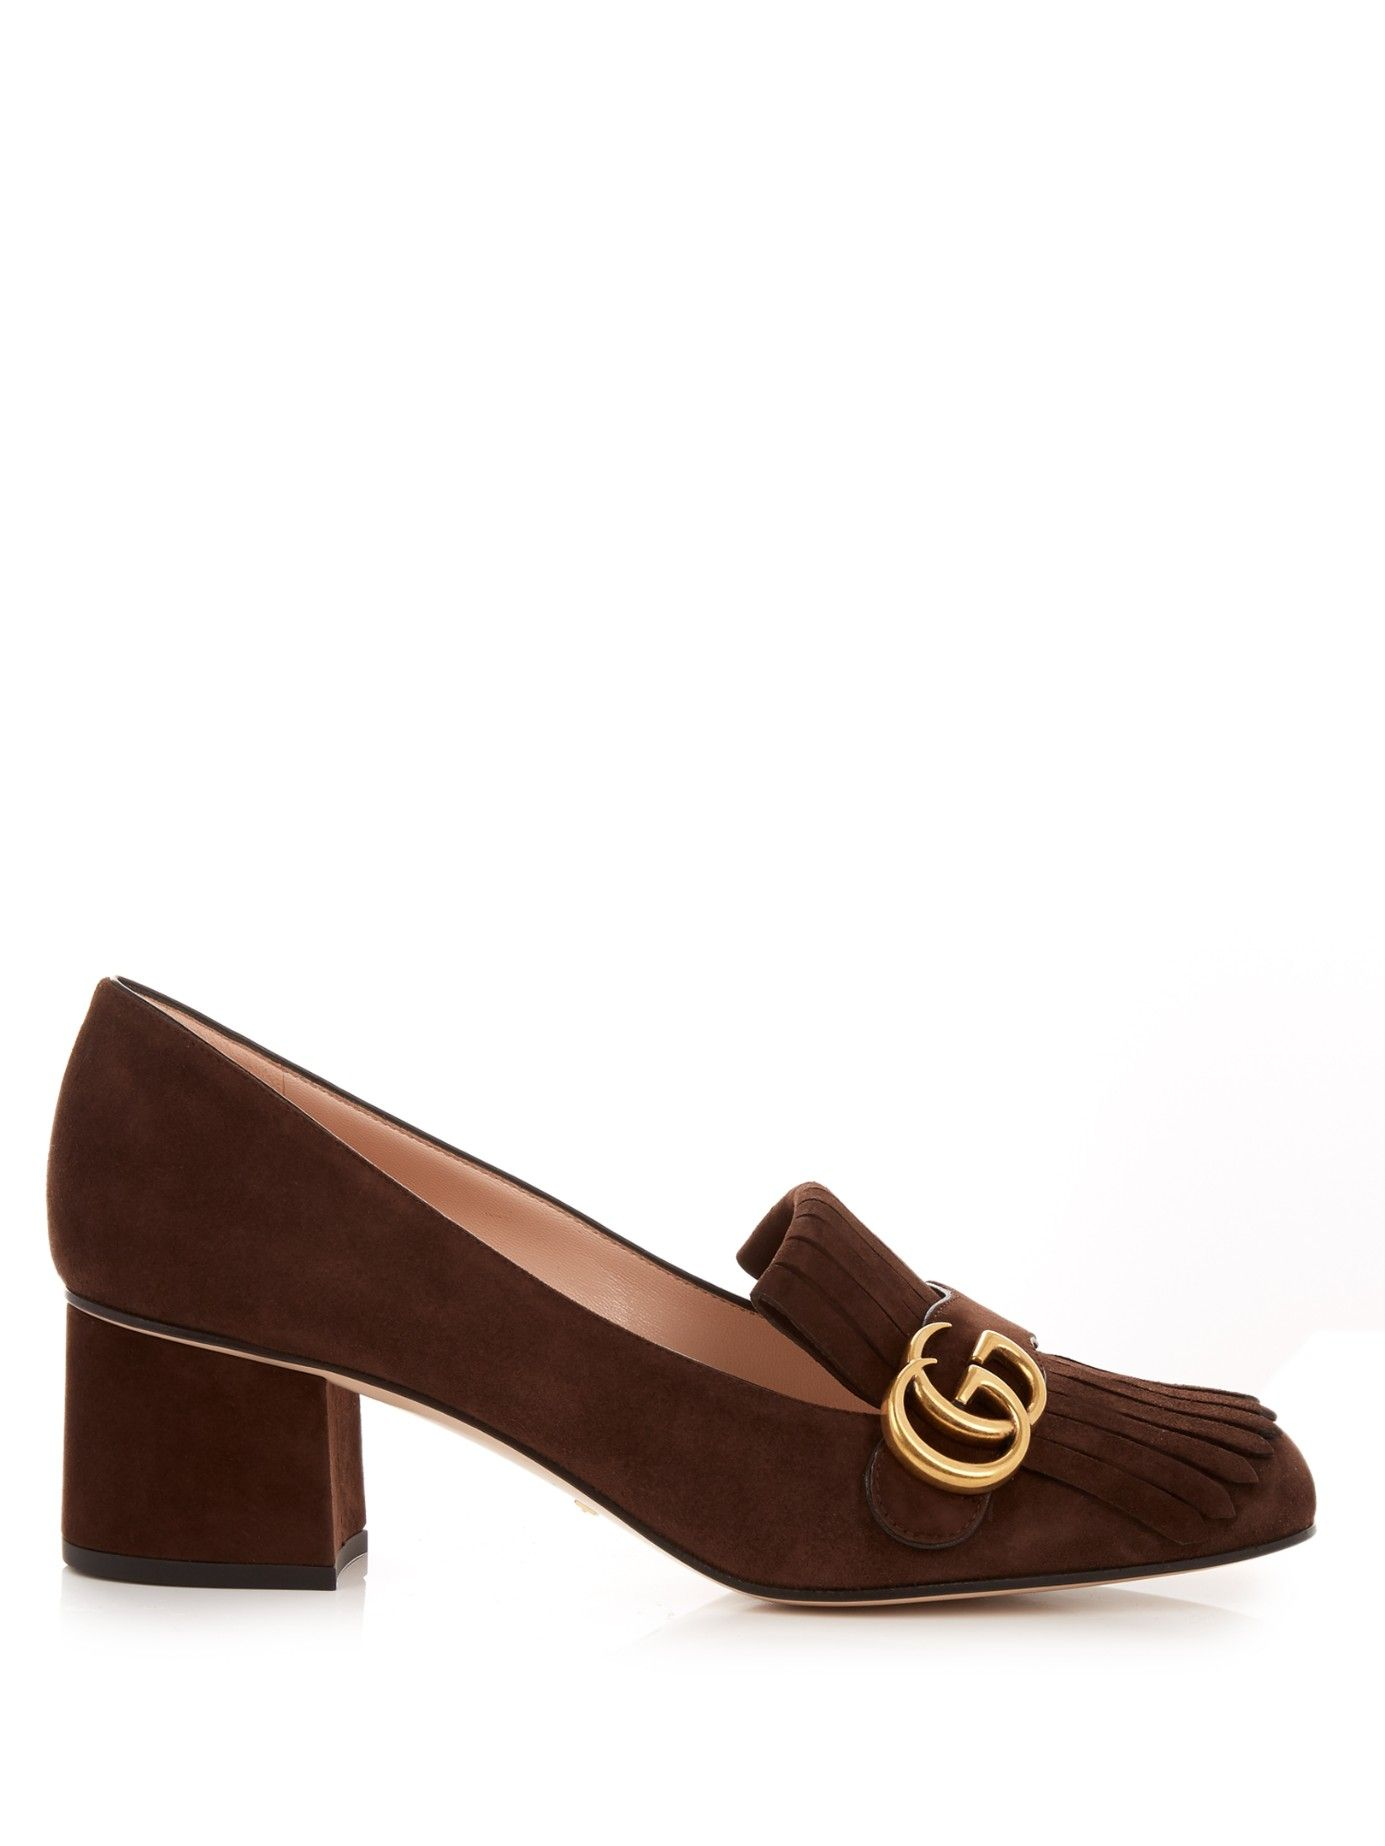 3999622e7f2 Marmont fringed suede loafers